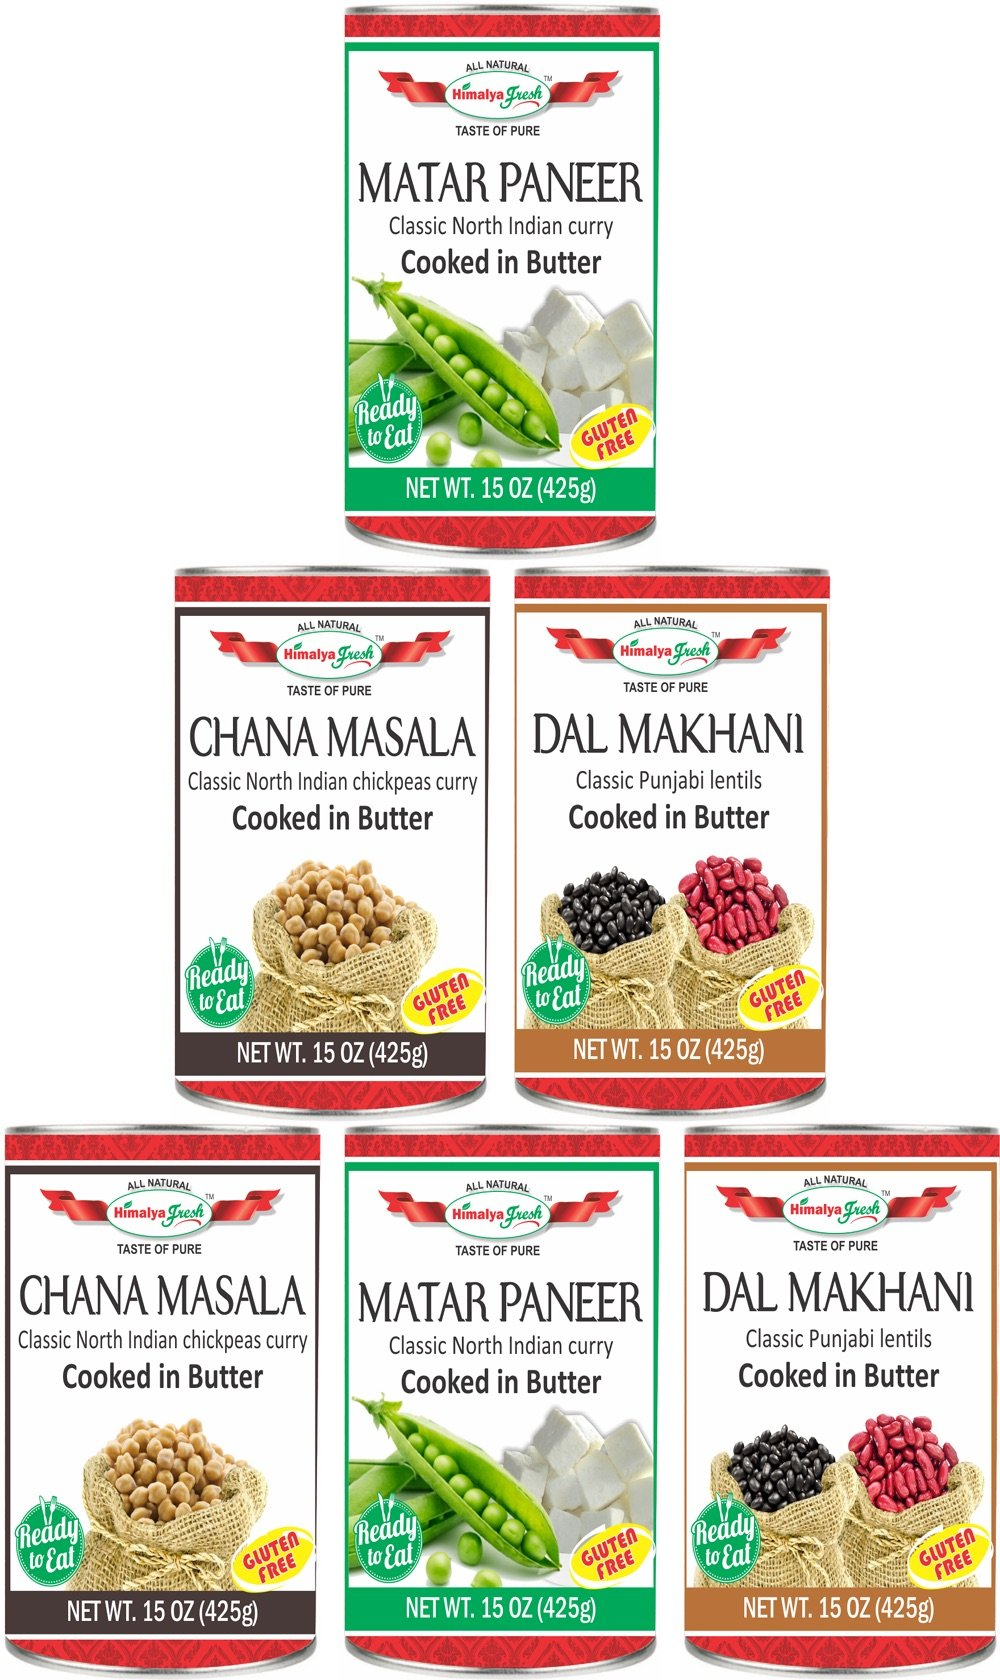 HIMALYA FRESH 6 Pack Variety of Canned Indian Curries - (Two 15 oz. cans each of Dal Makhani, Chana Masala and Matar Paneer) All Natural Authentic Indian Food - Vegetarian, No Fillers Or Preservatives by Himalya Fresh